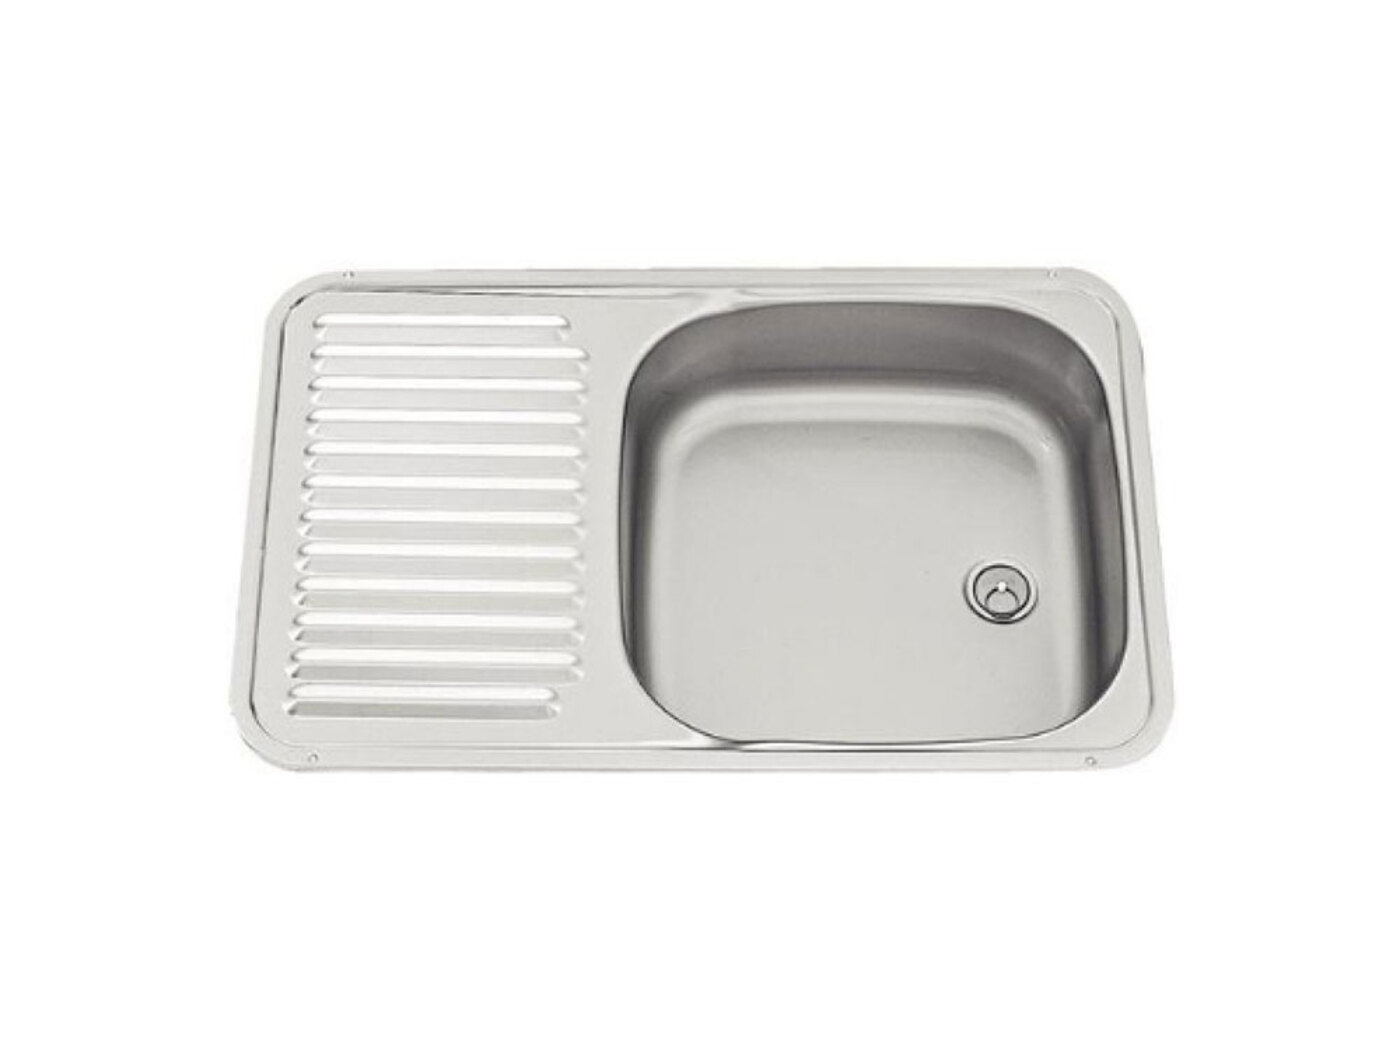 Accessory shop caravan motorhome fresh water waste kitchen sink units smev sink with drainer - Caravan kitchen sink ...